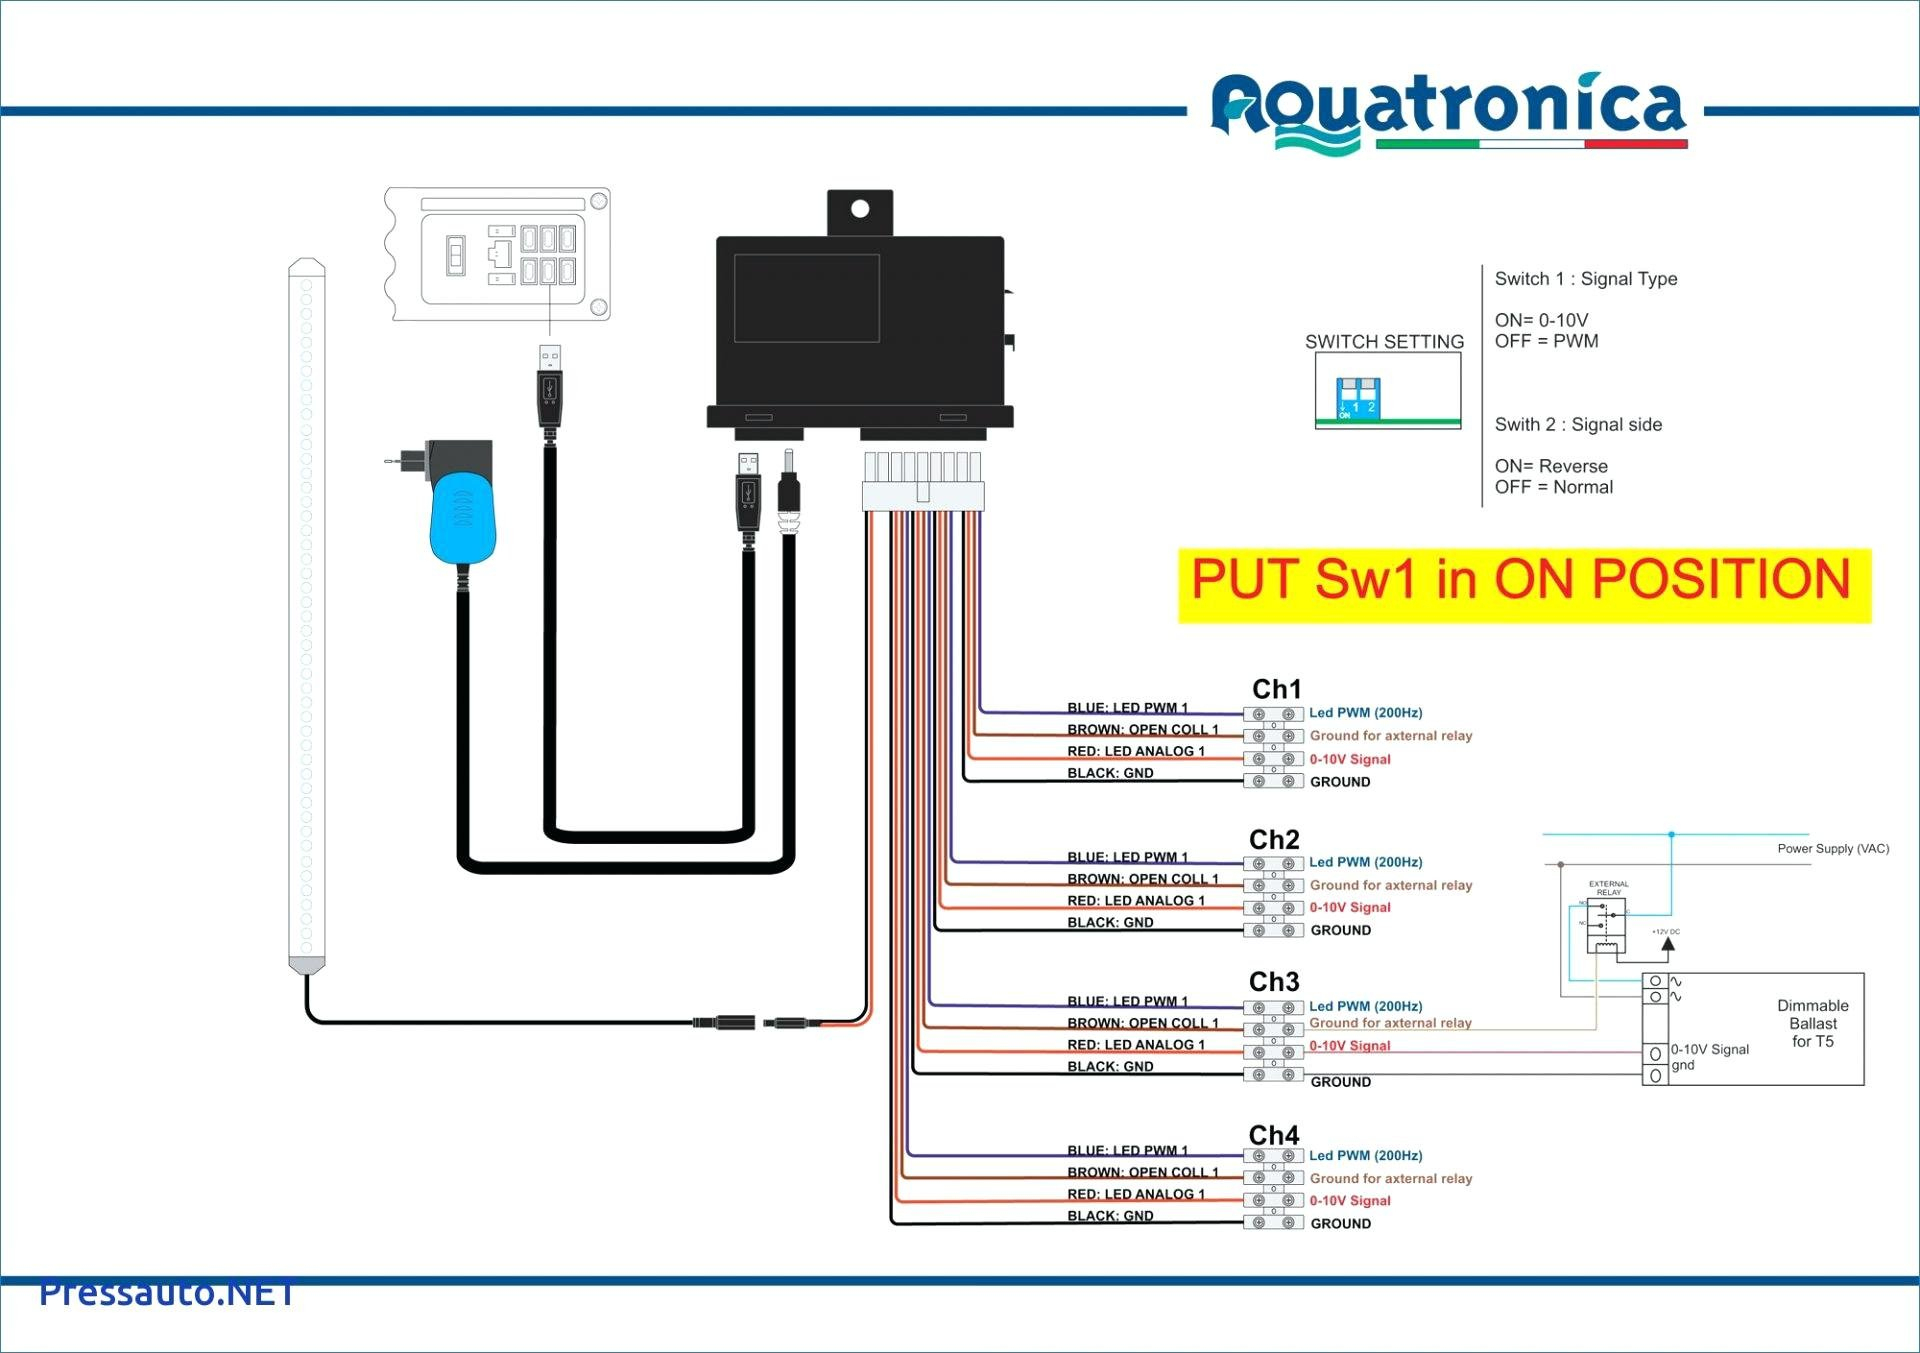 Lutron 0 10V Dimming Wiring Diagram - Wiring Solutions - 0 10 Volt Dimming Wiring Diagram